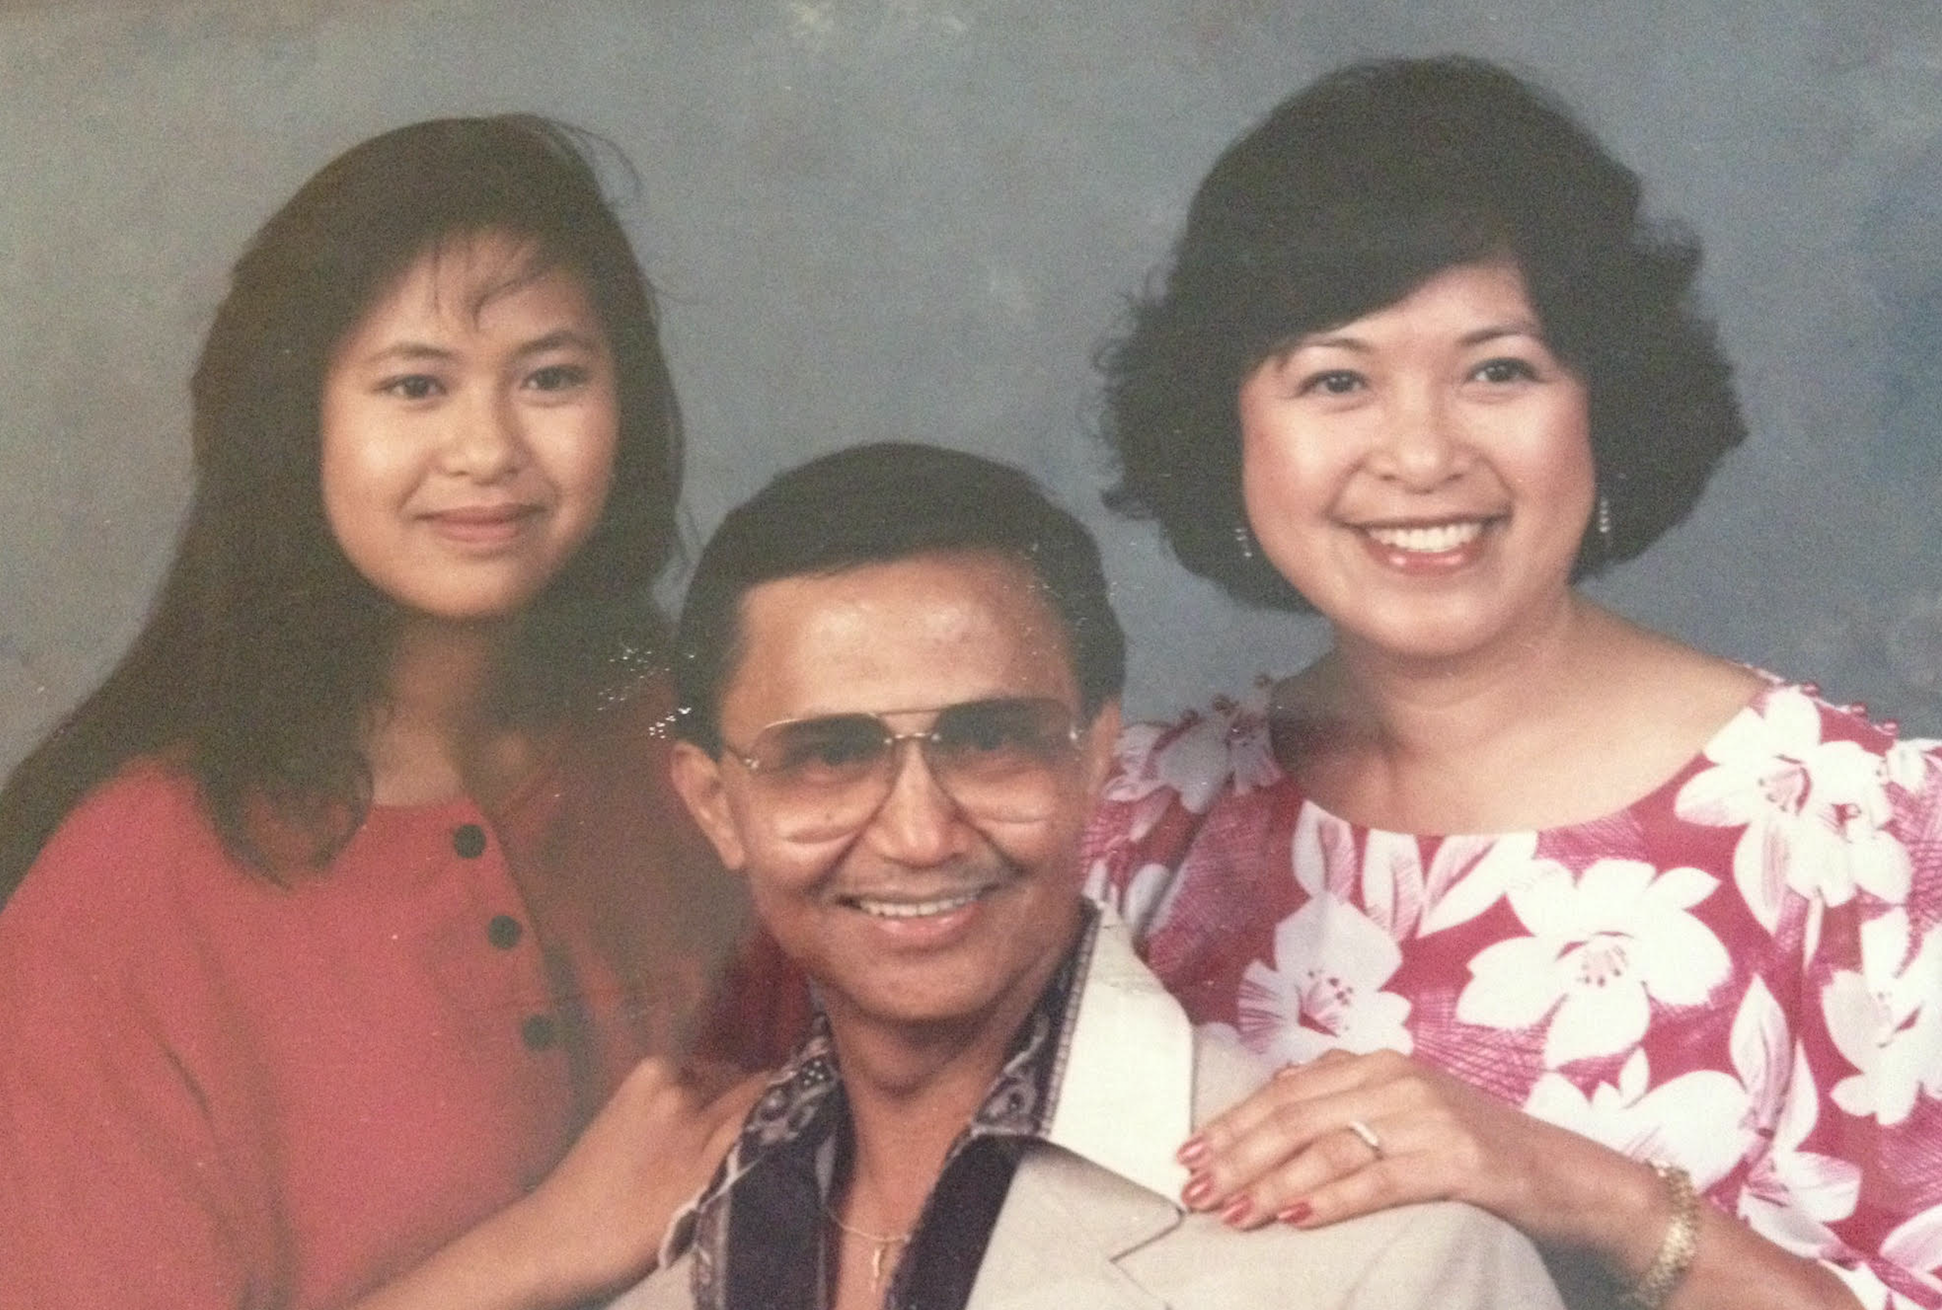 Marissa Aroy, her father Ben Aroy, and mother Marcy Aroy.